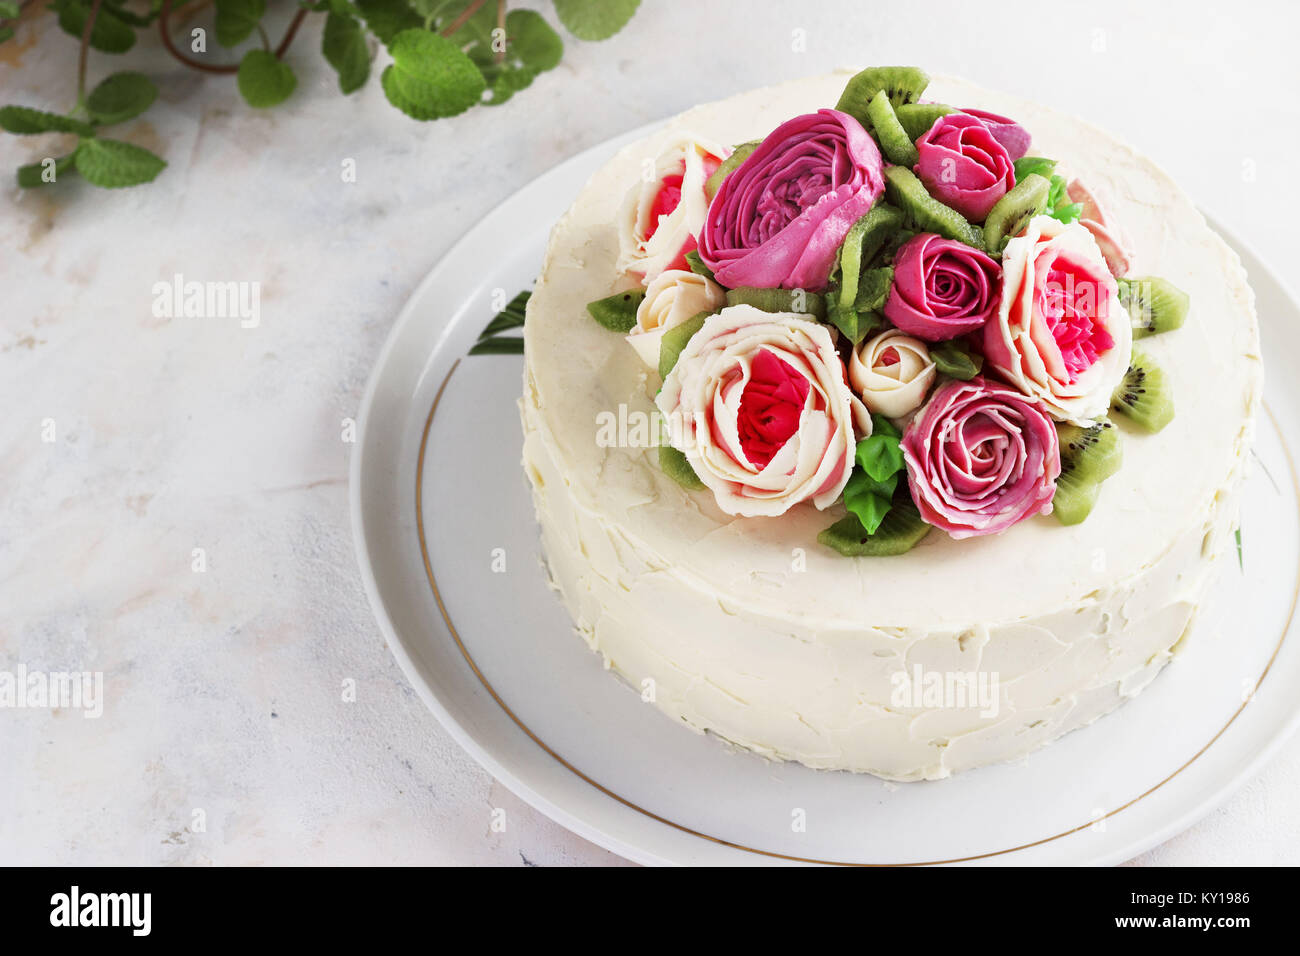 Birthday cake rose flowers stock photos birthday cake rose flowers birthday cake with flowers rose on white background stock image izmirmasajfo